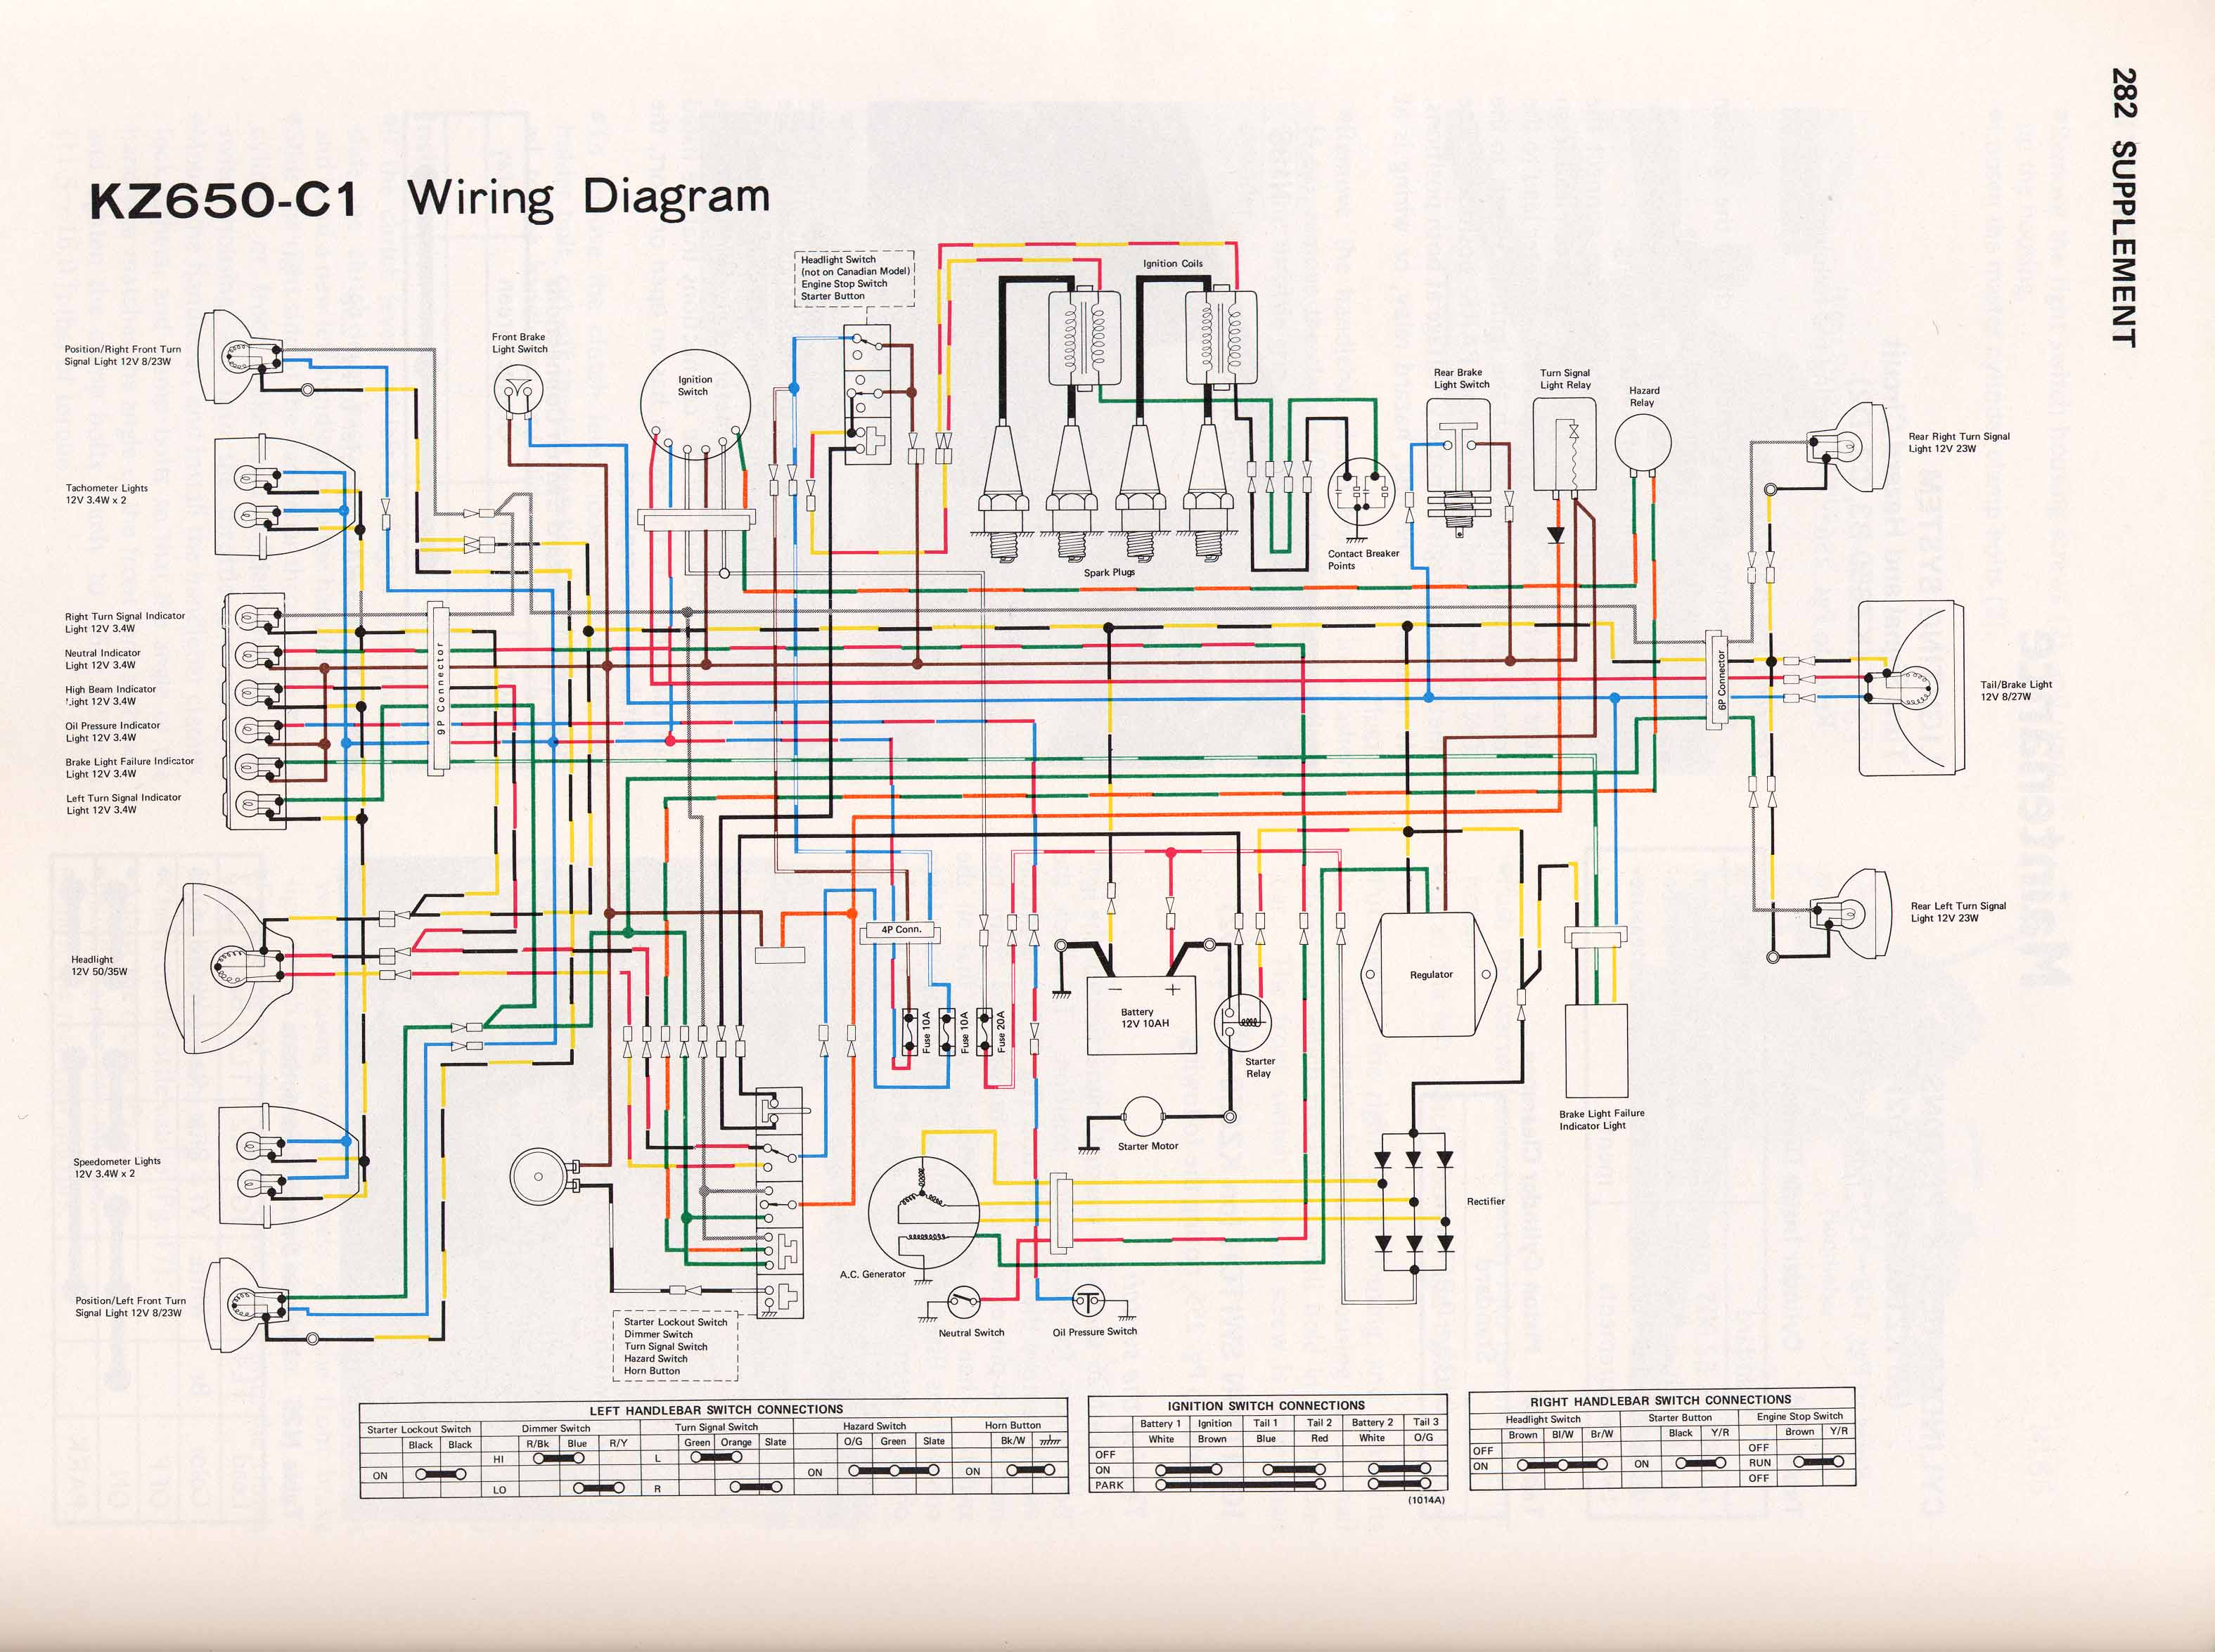 Kz650 Wiring Harness Diagram - Wiring Diagram M4 on